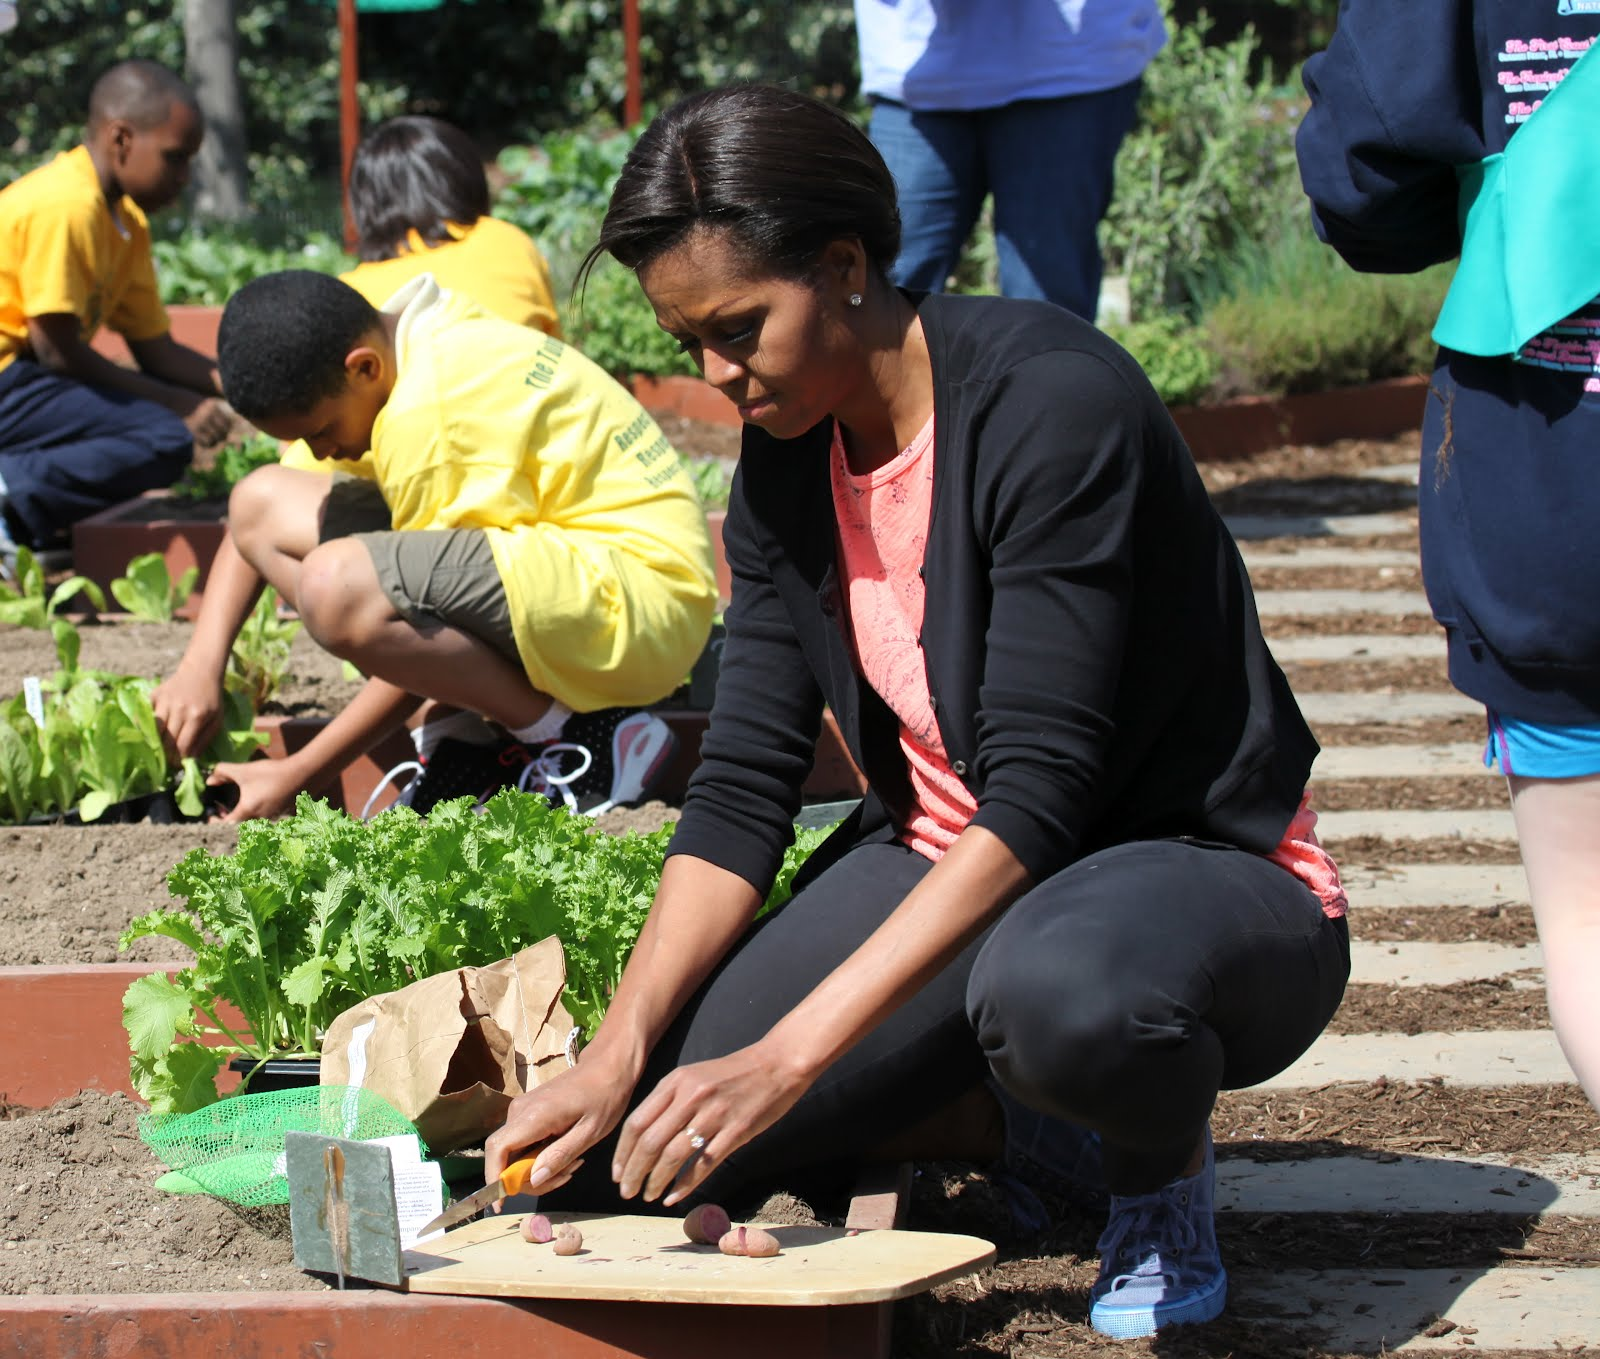 Michelle Obama Kitchen Garden White House Easter Egg Roll 2012 Transcript Video First Lady